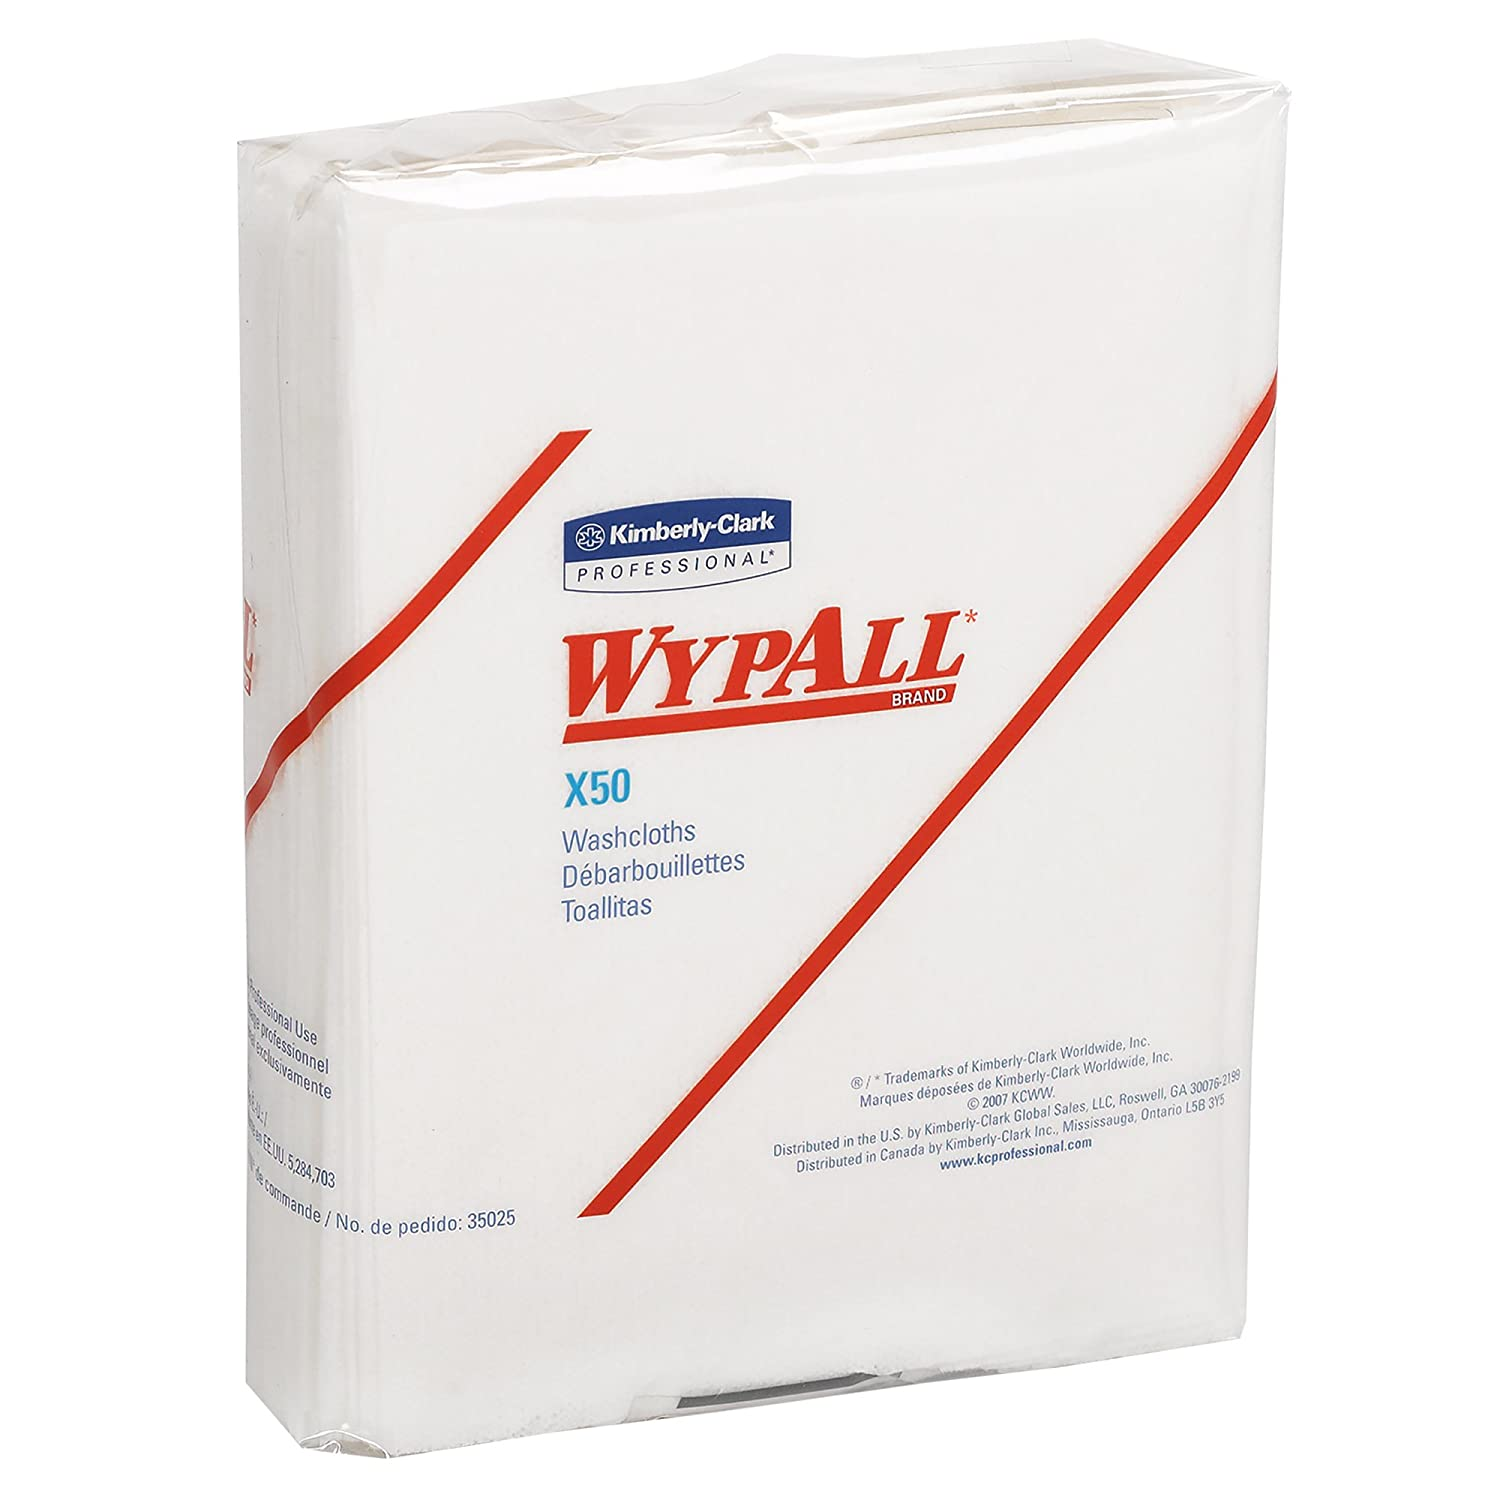 Wypall X50 Disposable Cloths 35025 Strong for Extended Use Quarterfold White 32 Packs Case 26 Sheets Pack 832 Sheets Case